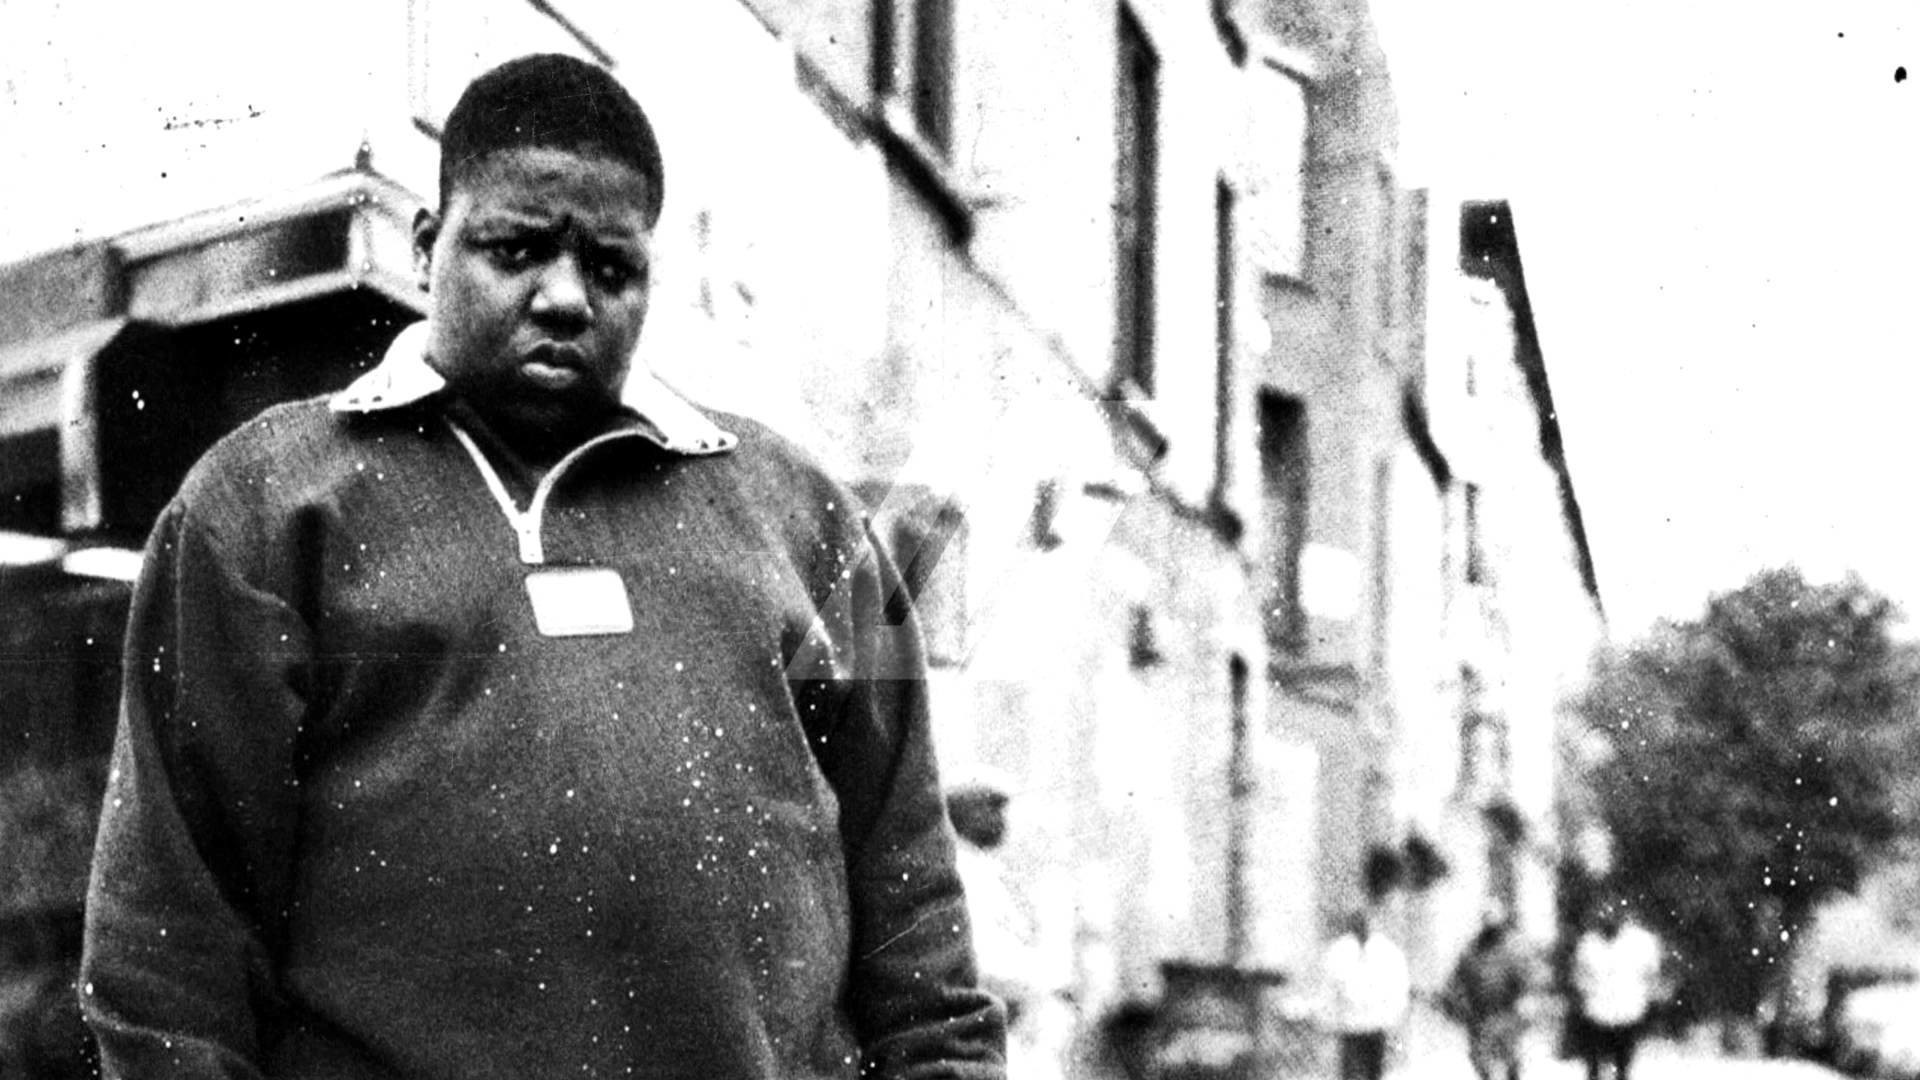 1920x1080  The Notorious B.I.G Wallpapers HD